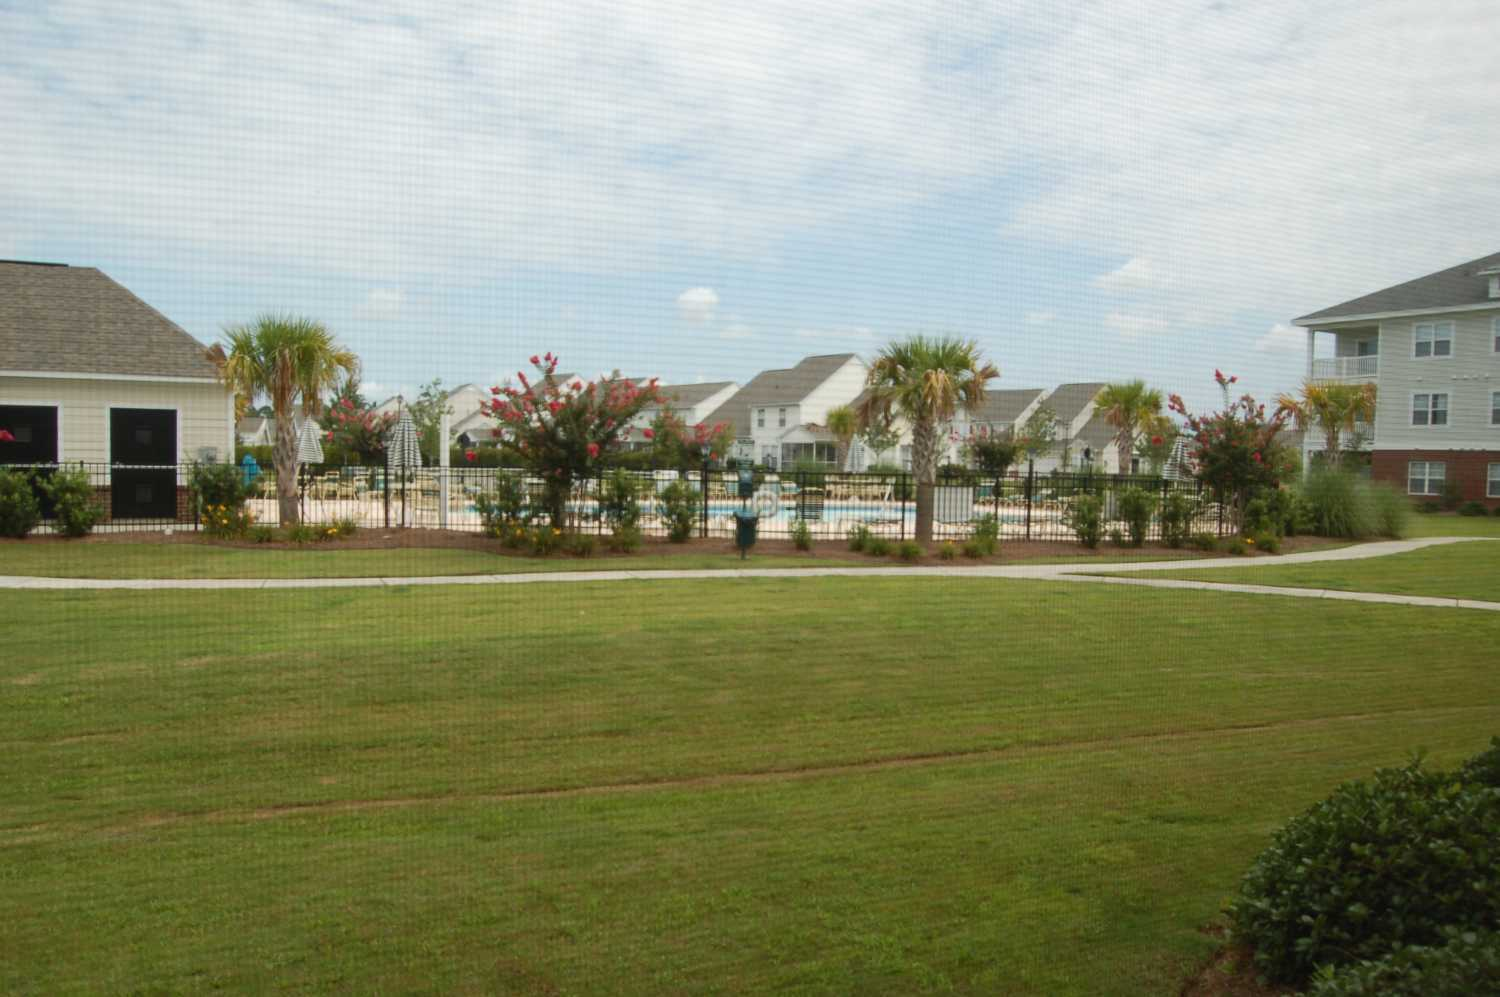 604 heathrow drive, unit 1097-15, **needs carpet***, myrtle beach, sc 29579